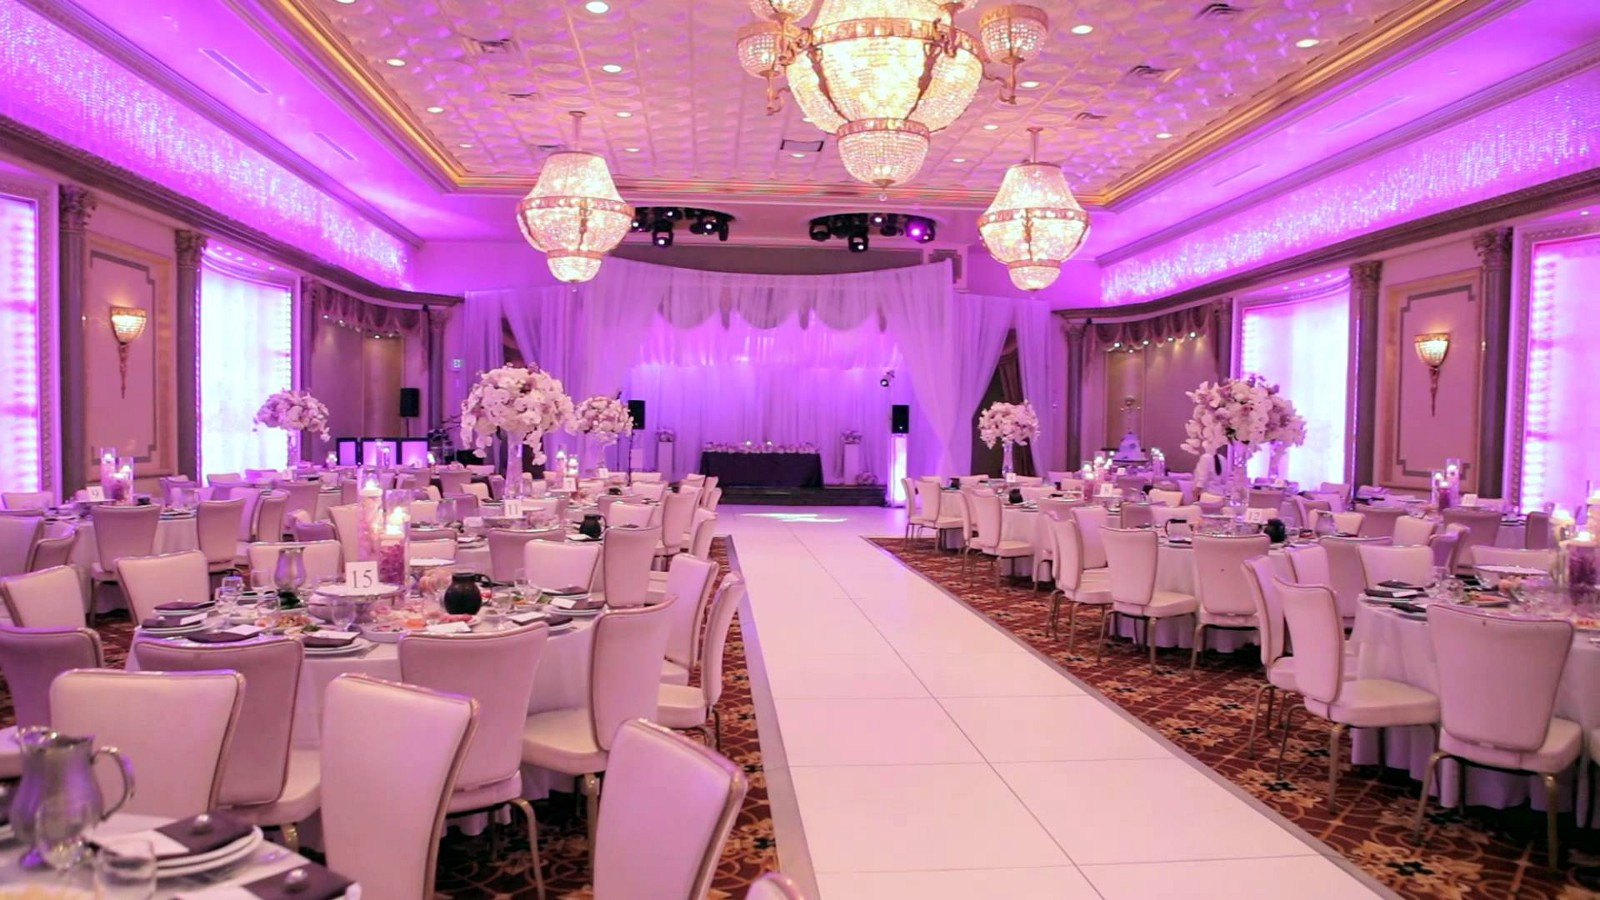 A stunning wedding reception hall Hudson Valley waits for you